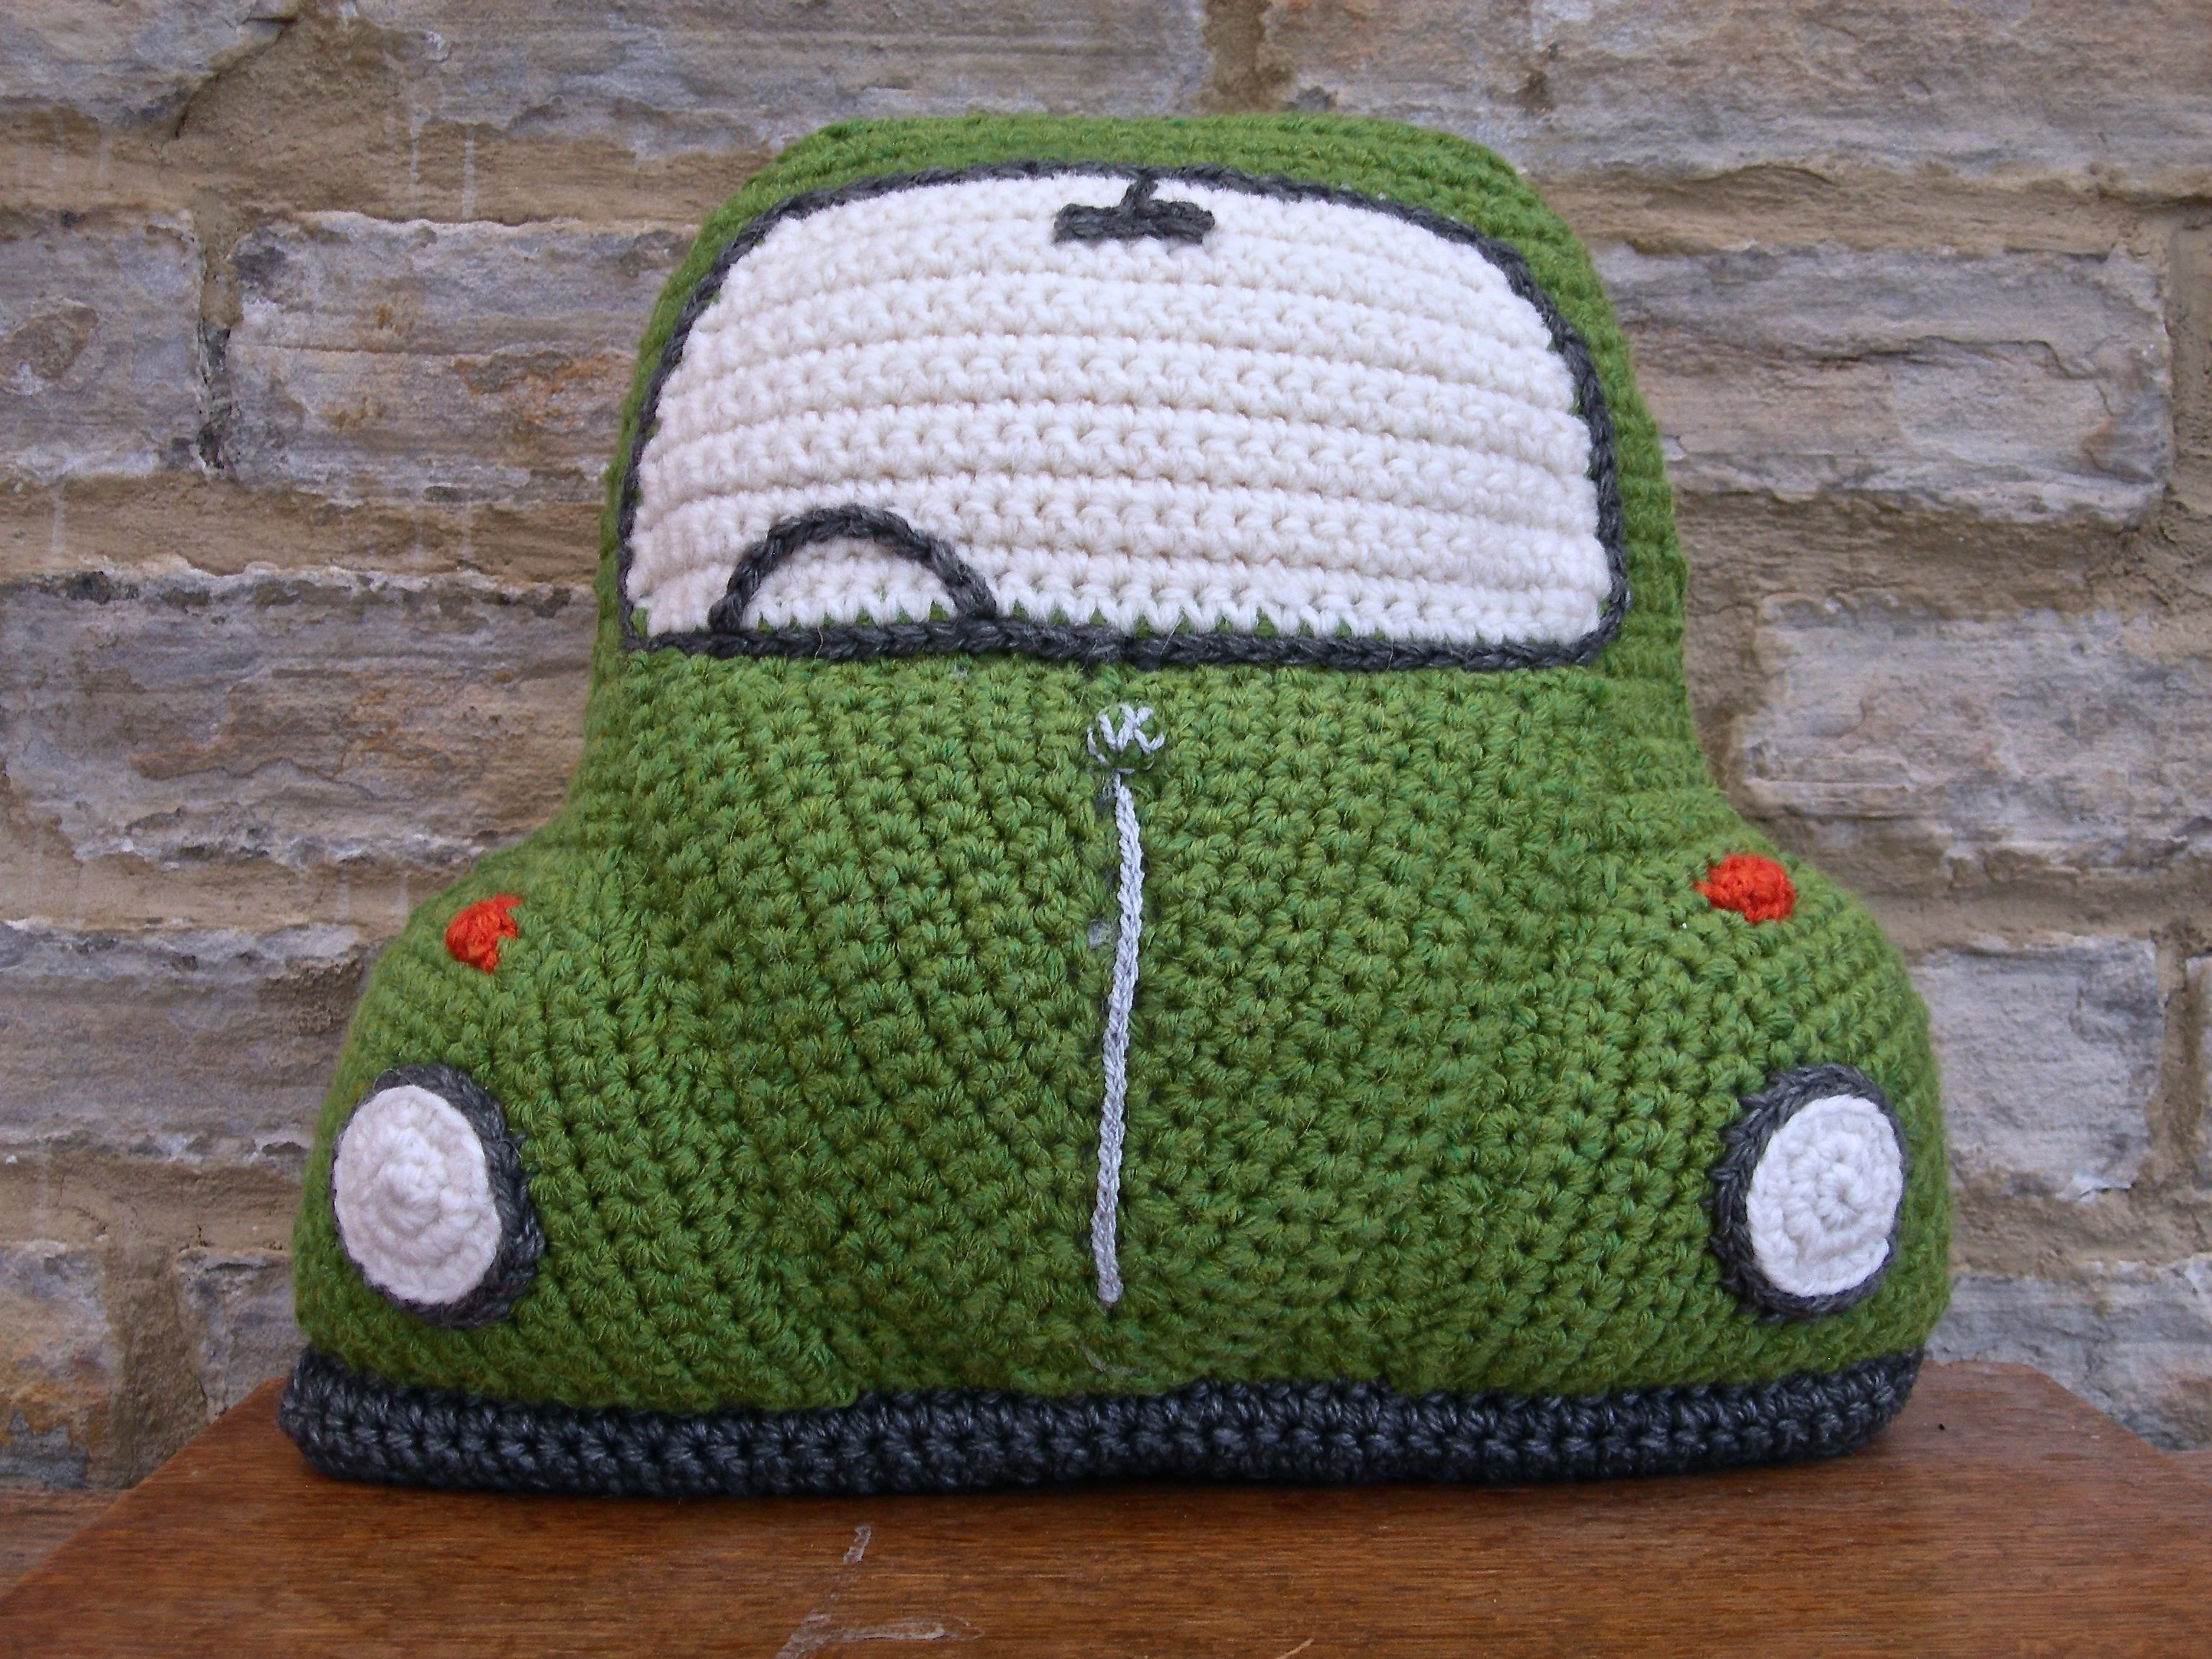 My new crocheted Beetle Cushion - based on the classic VW Bug :) | crochet | Pinterest | Crochet ...